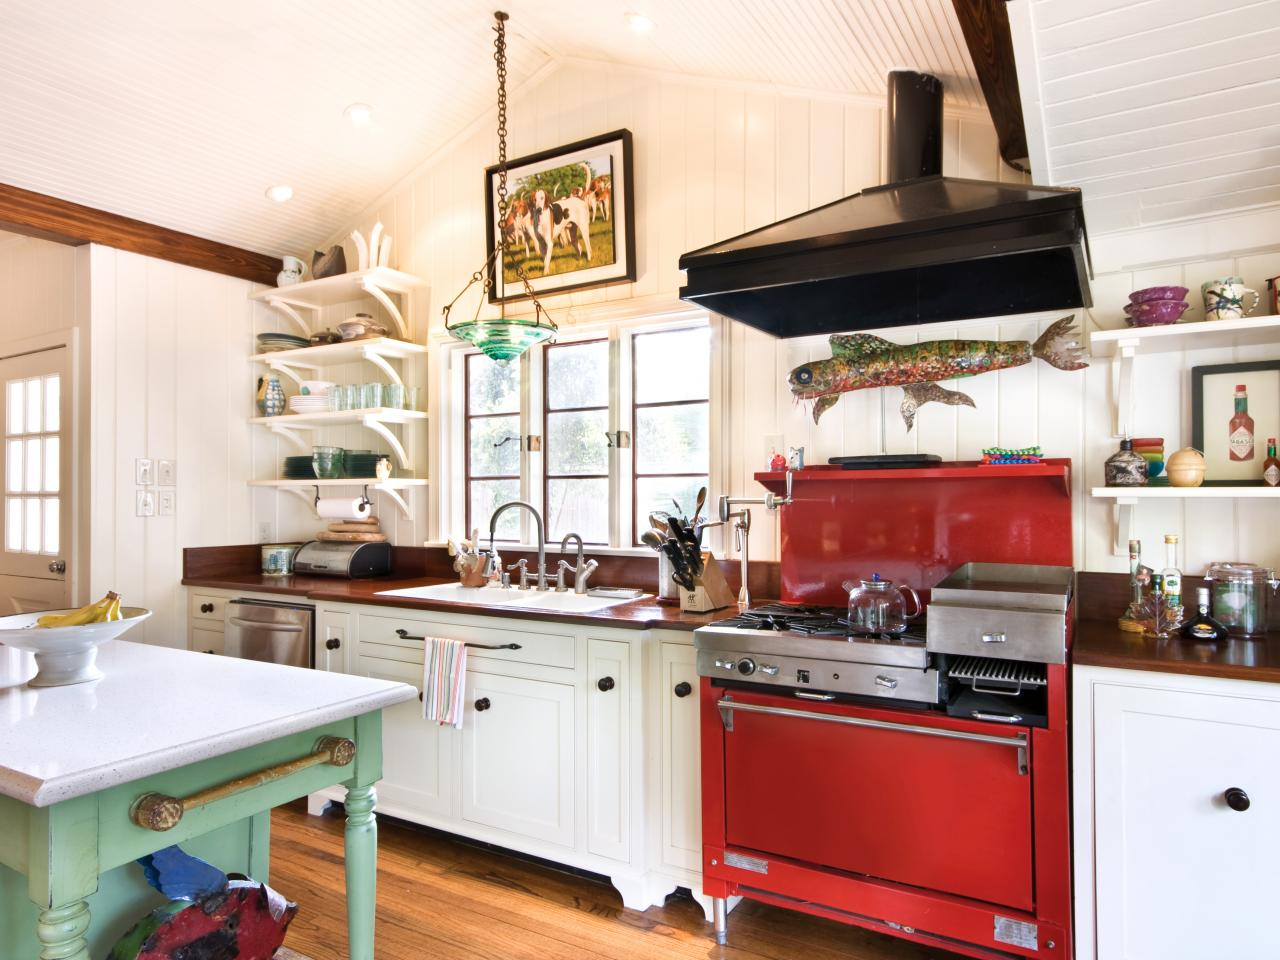 25 Ways To Remodel Your Craftsman Style Kitchen